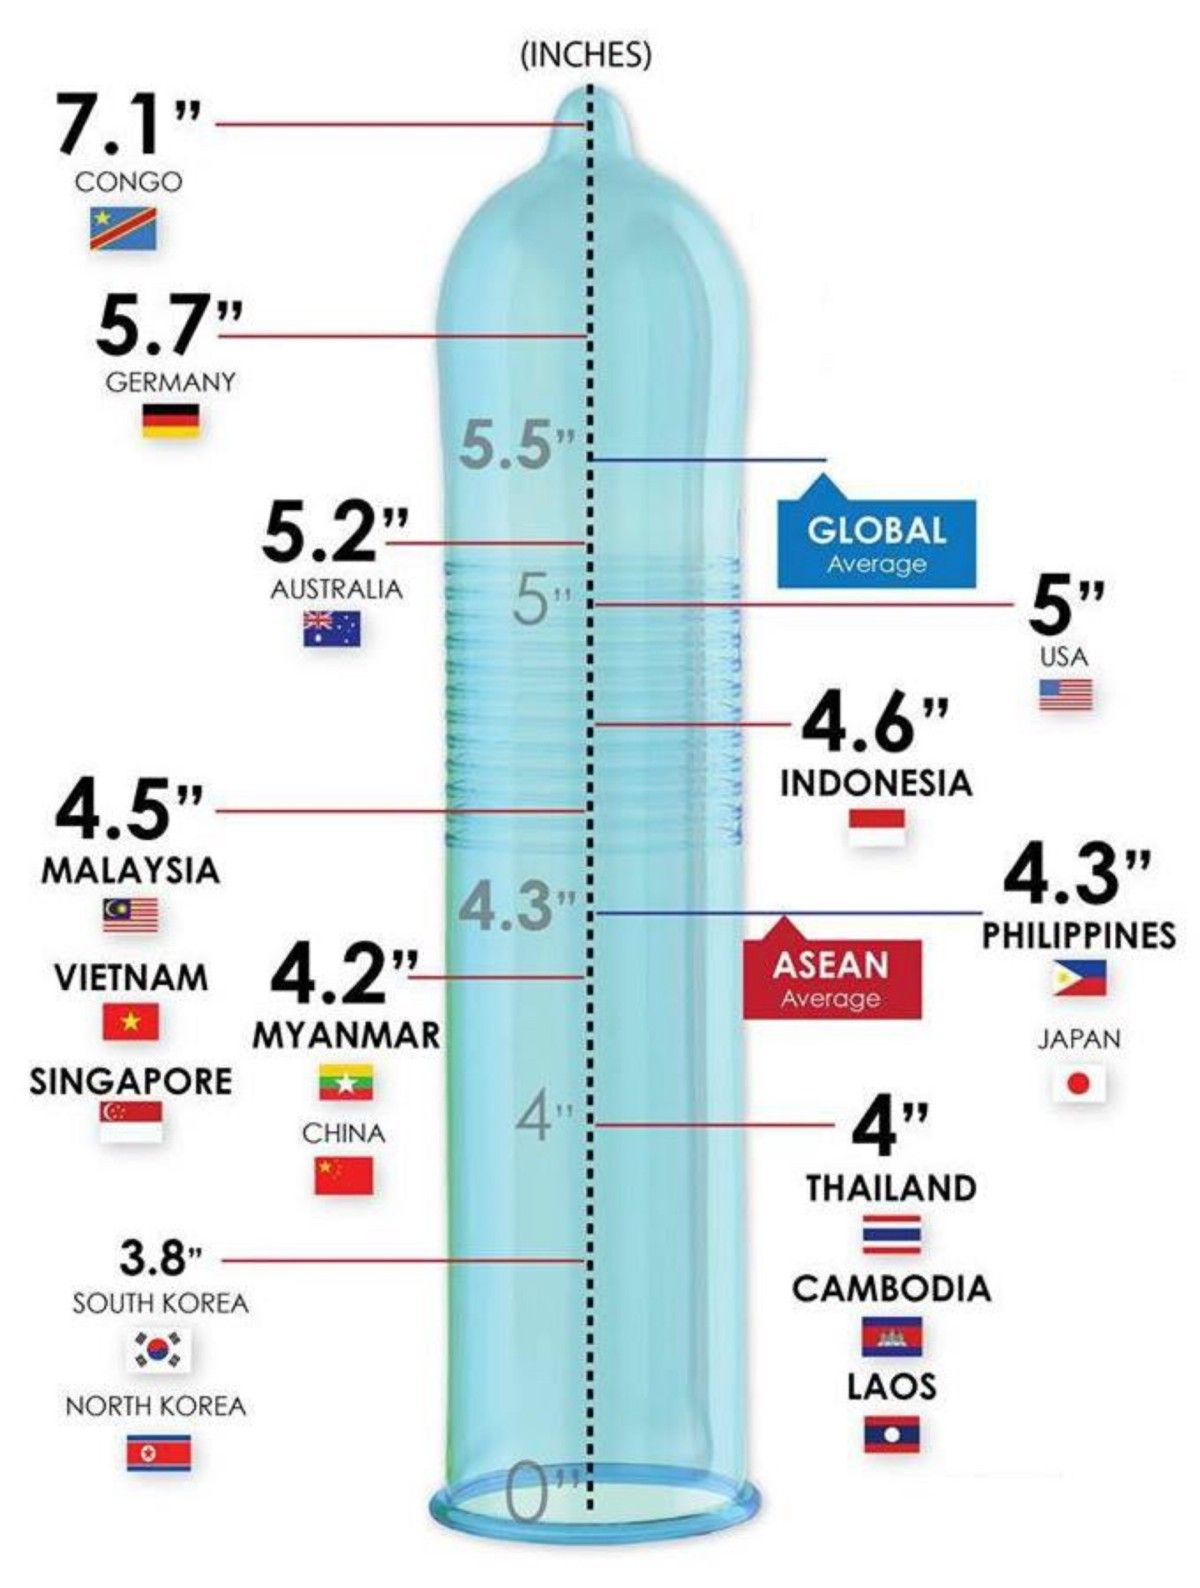 Average Size Of Penis By Country